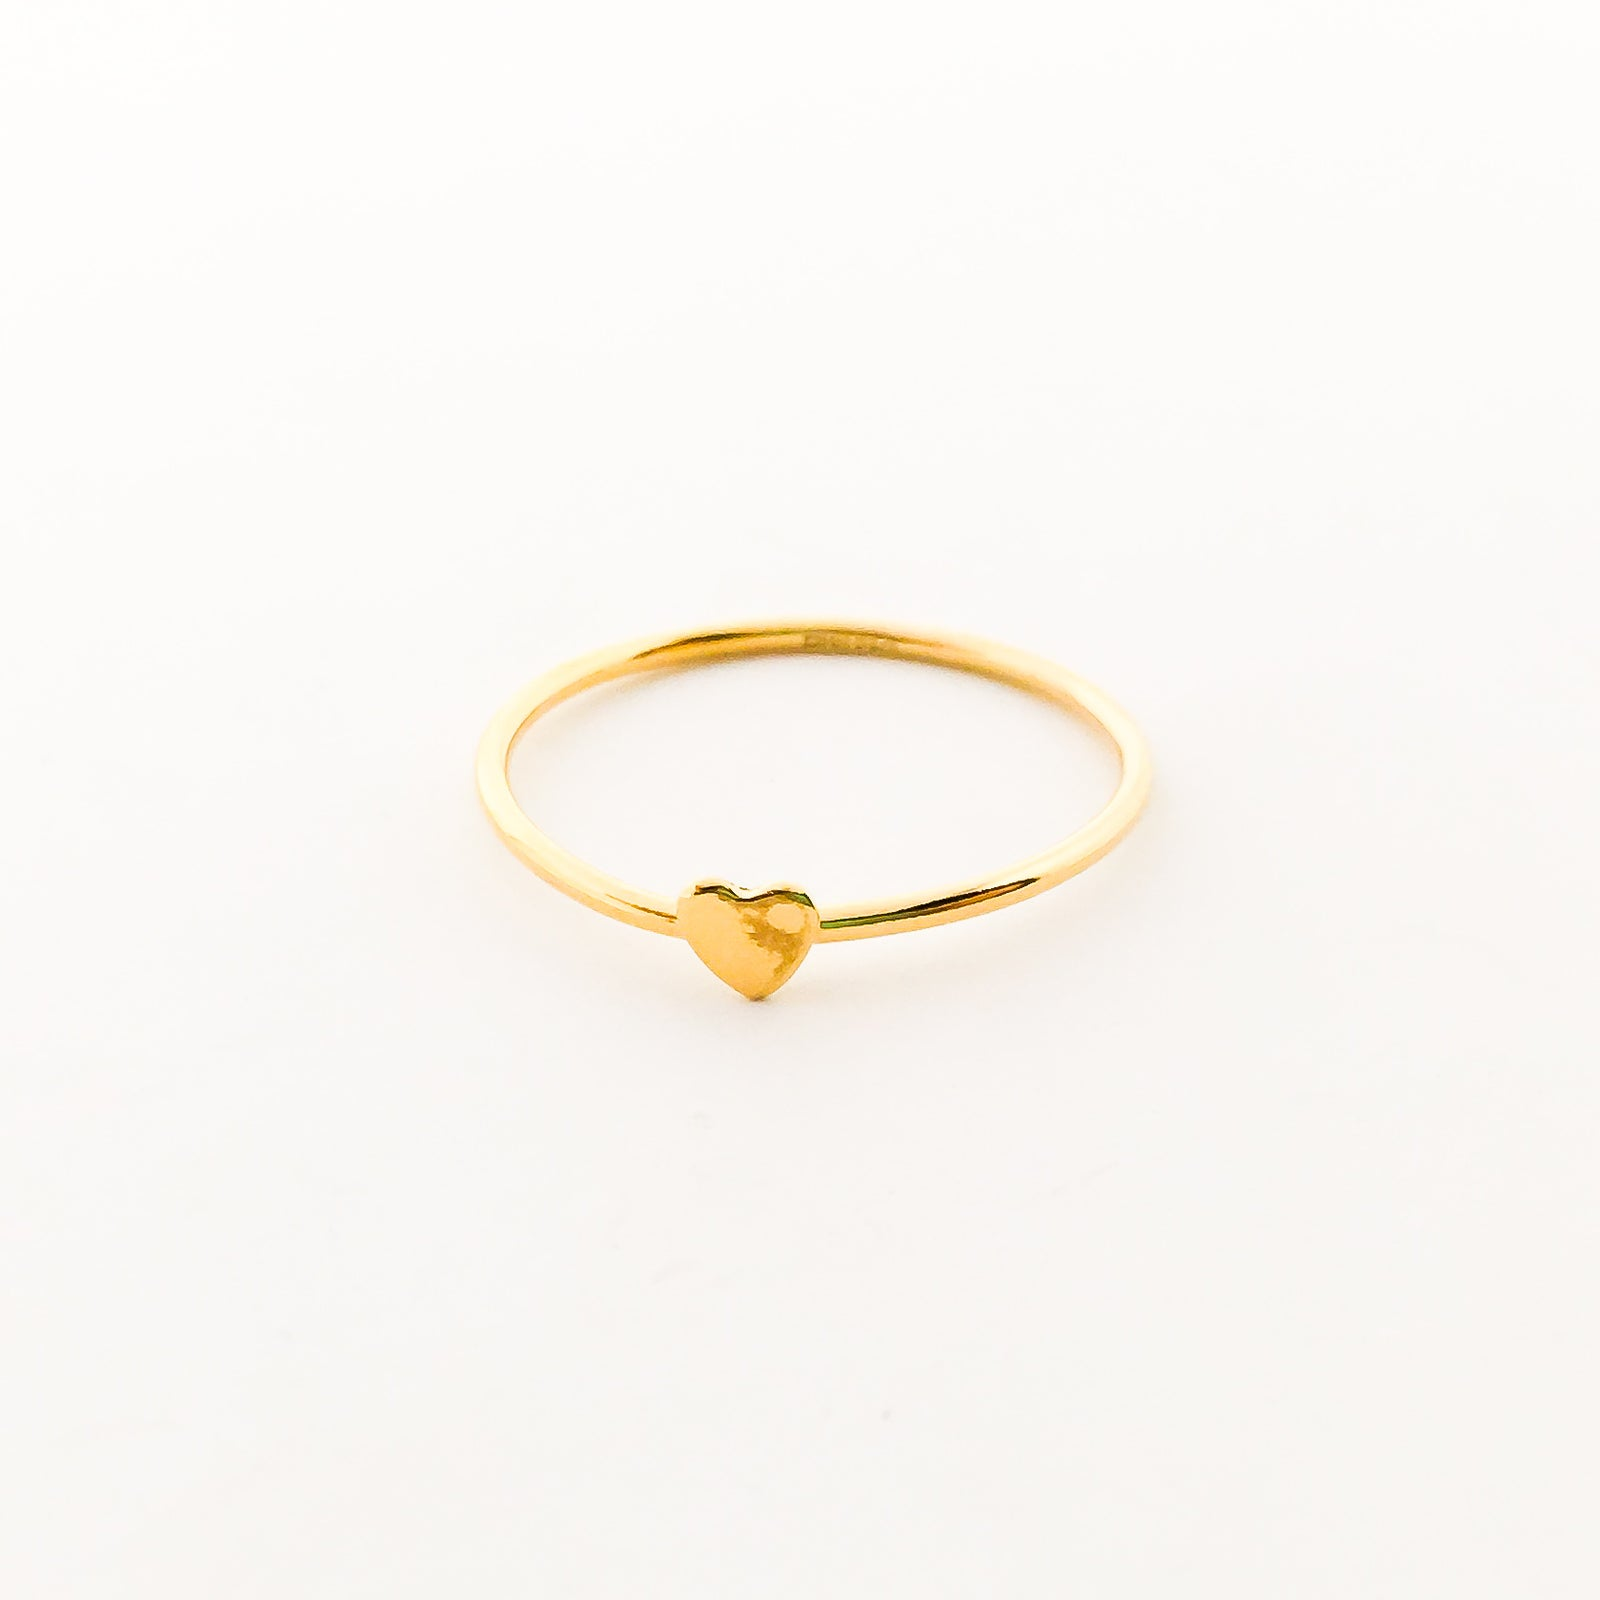 14K GOLD-FILLED HEART STACKING RINGS | SIZE OPTIONS